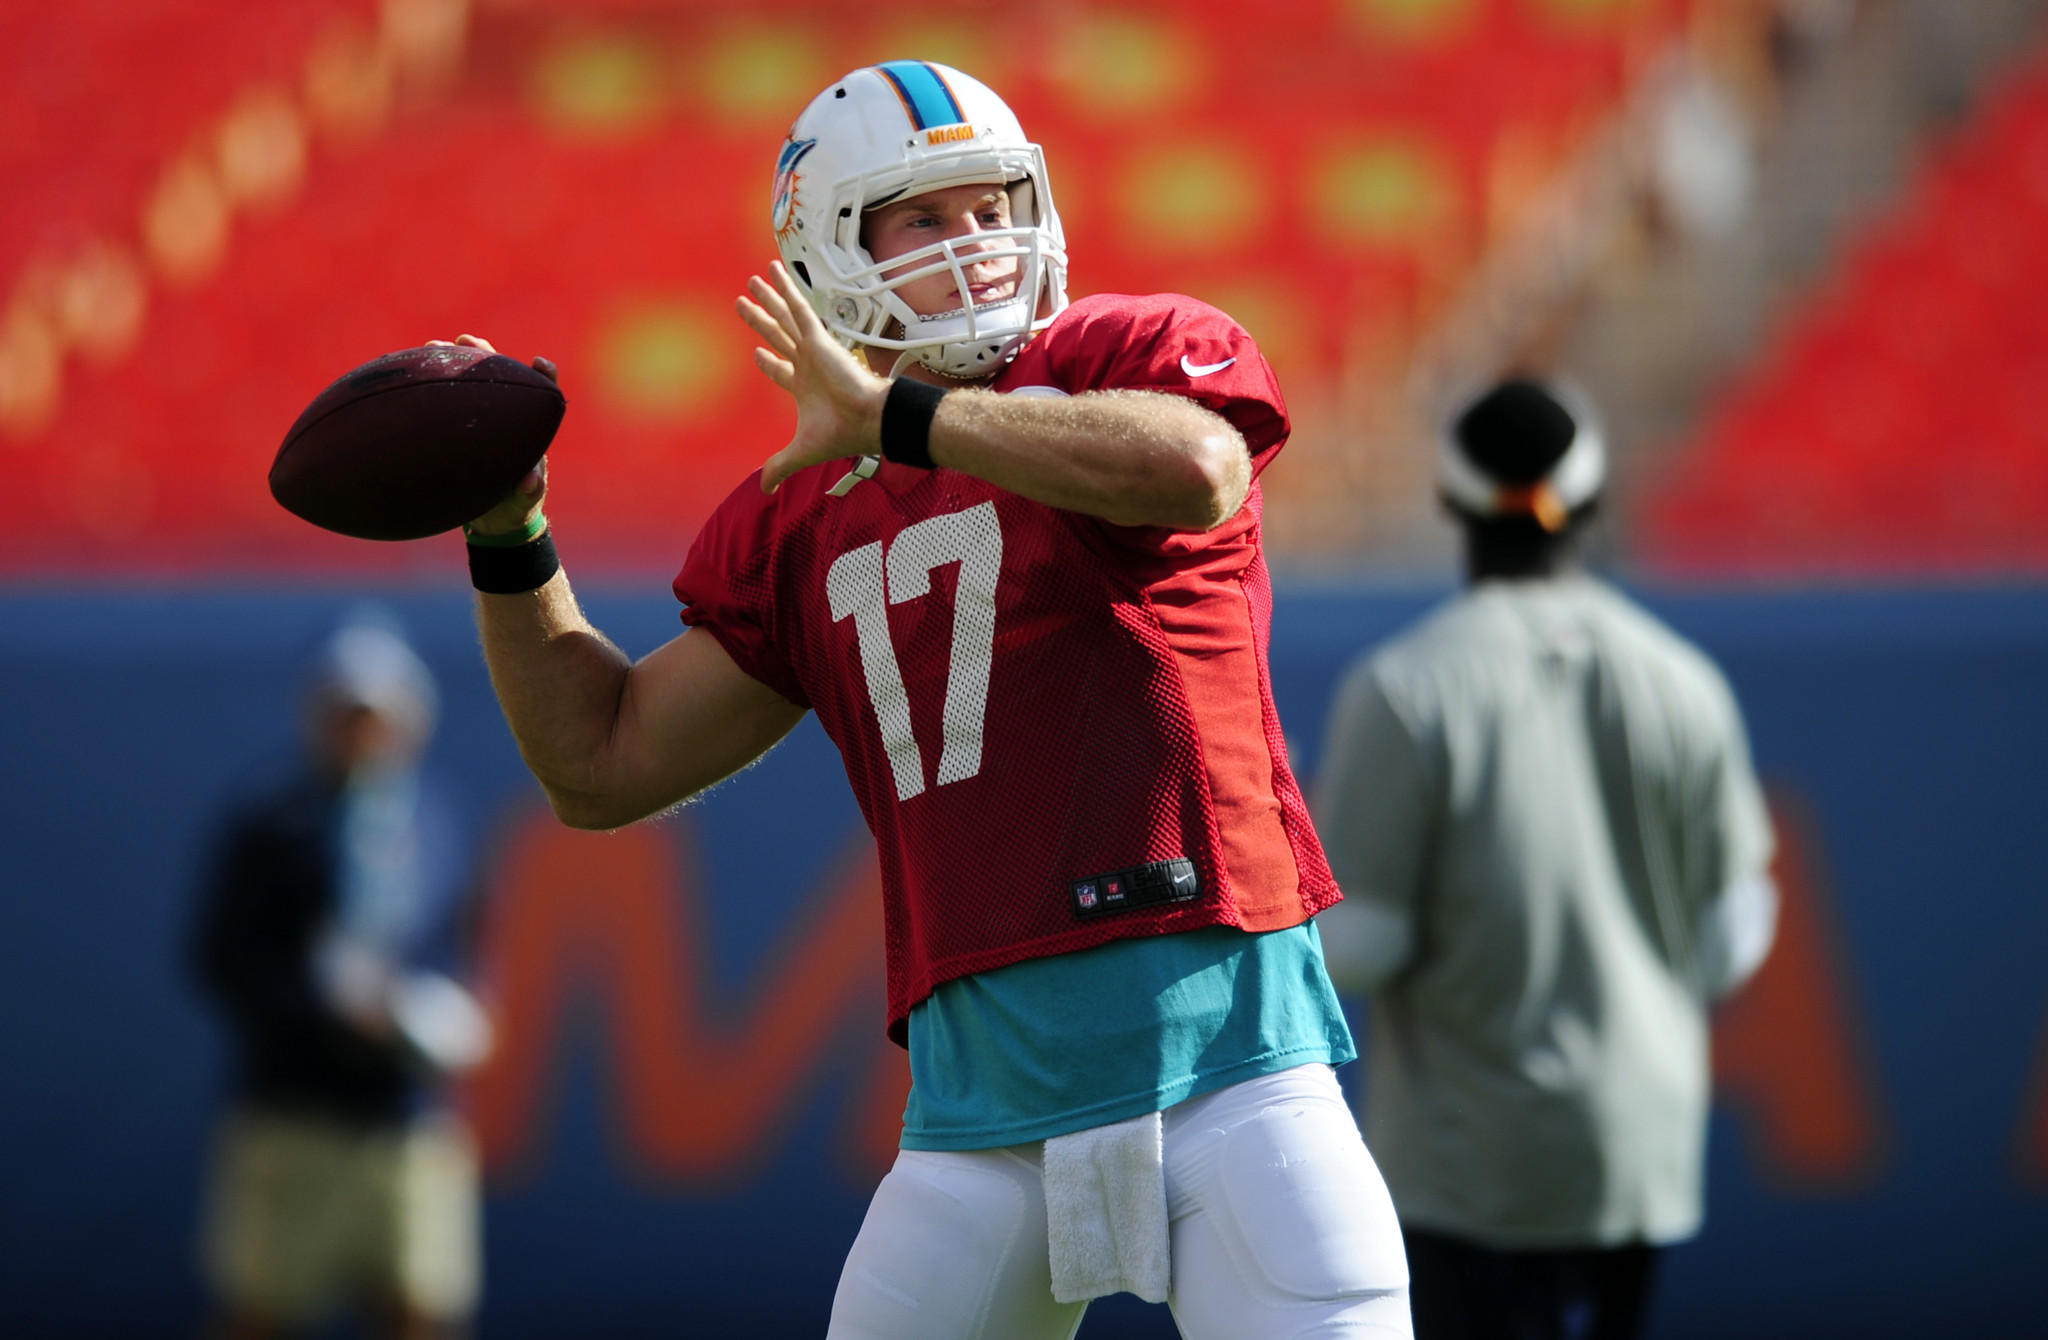 QB, 6-4, 220 NFL experience: Third season He showed improvement in his second season as an NFL starter, producing an 81.7 passer rating. But Tannehill needs to improve his completion percentage (60.4), throw fewer interceptions (17) and deliver more big plays.